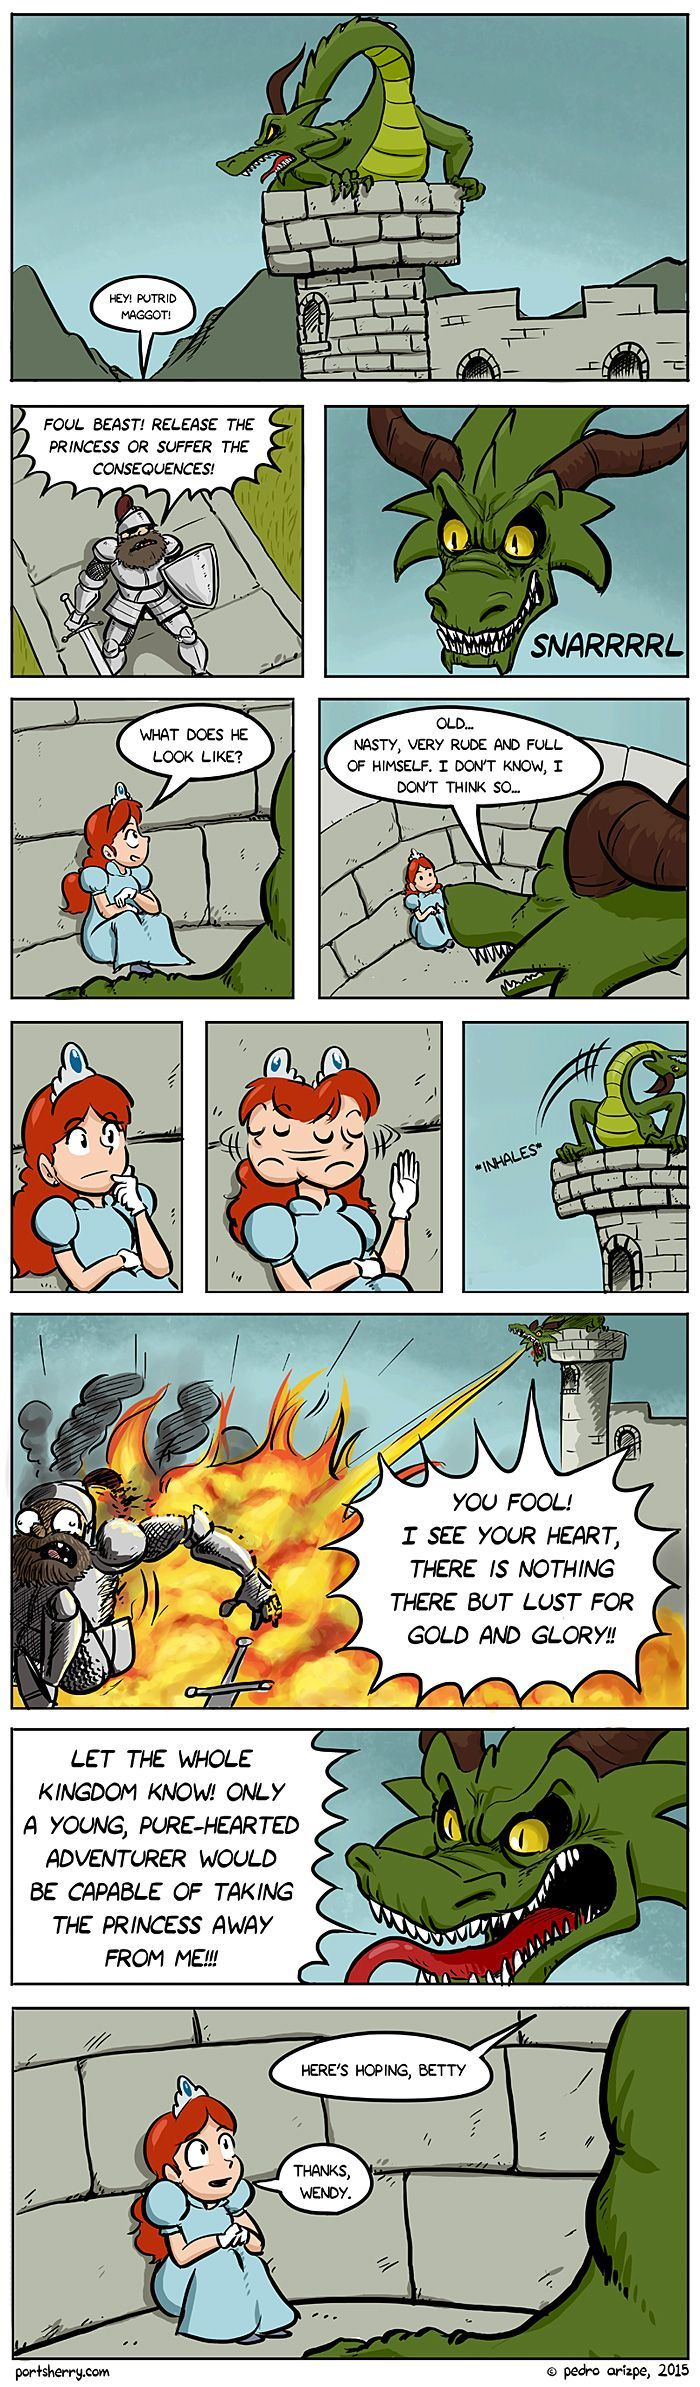 There's a reason why dragons guard the castle the princesses are held